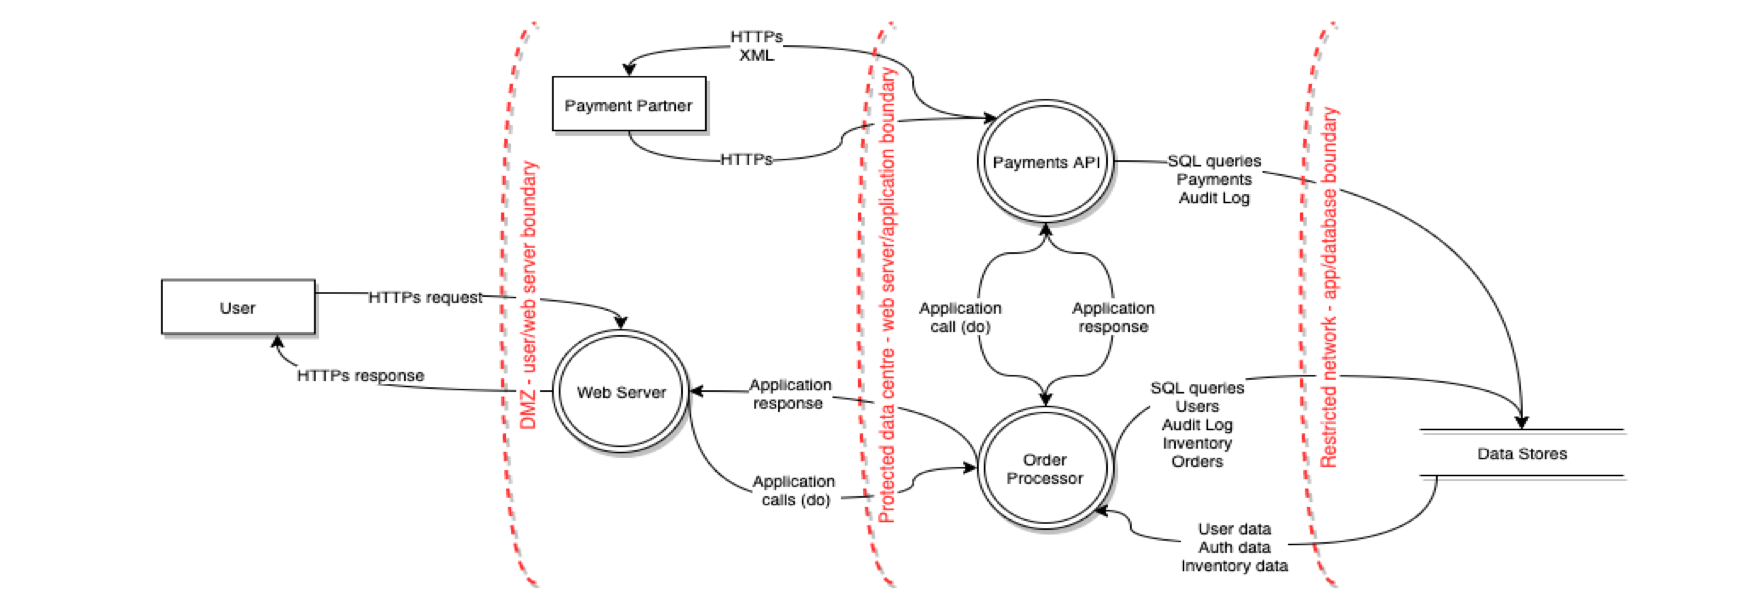 Process flow diagram for threat modelling